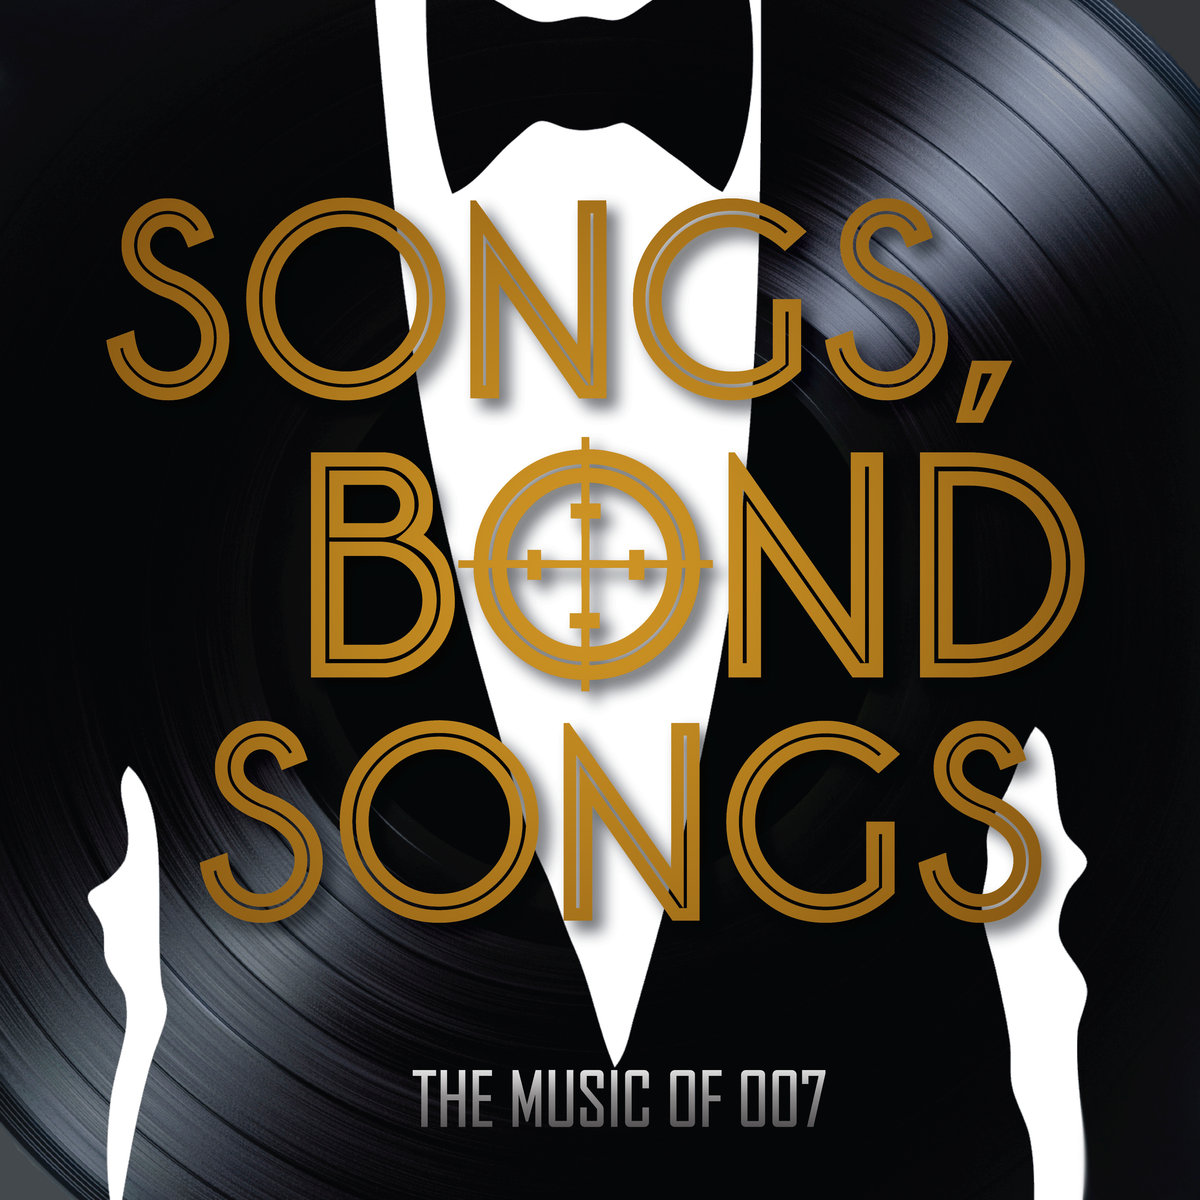 bond james bond cd